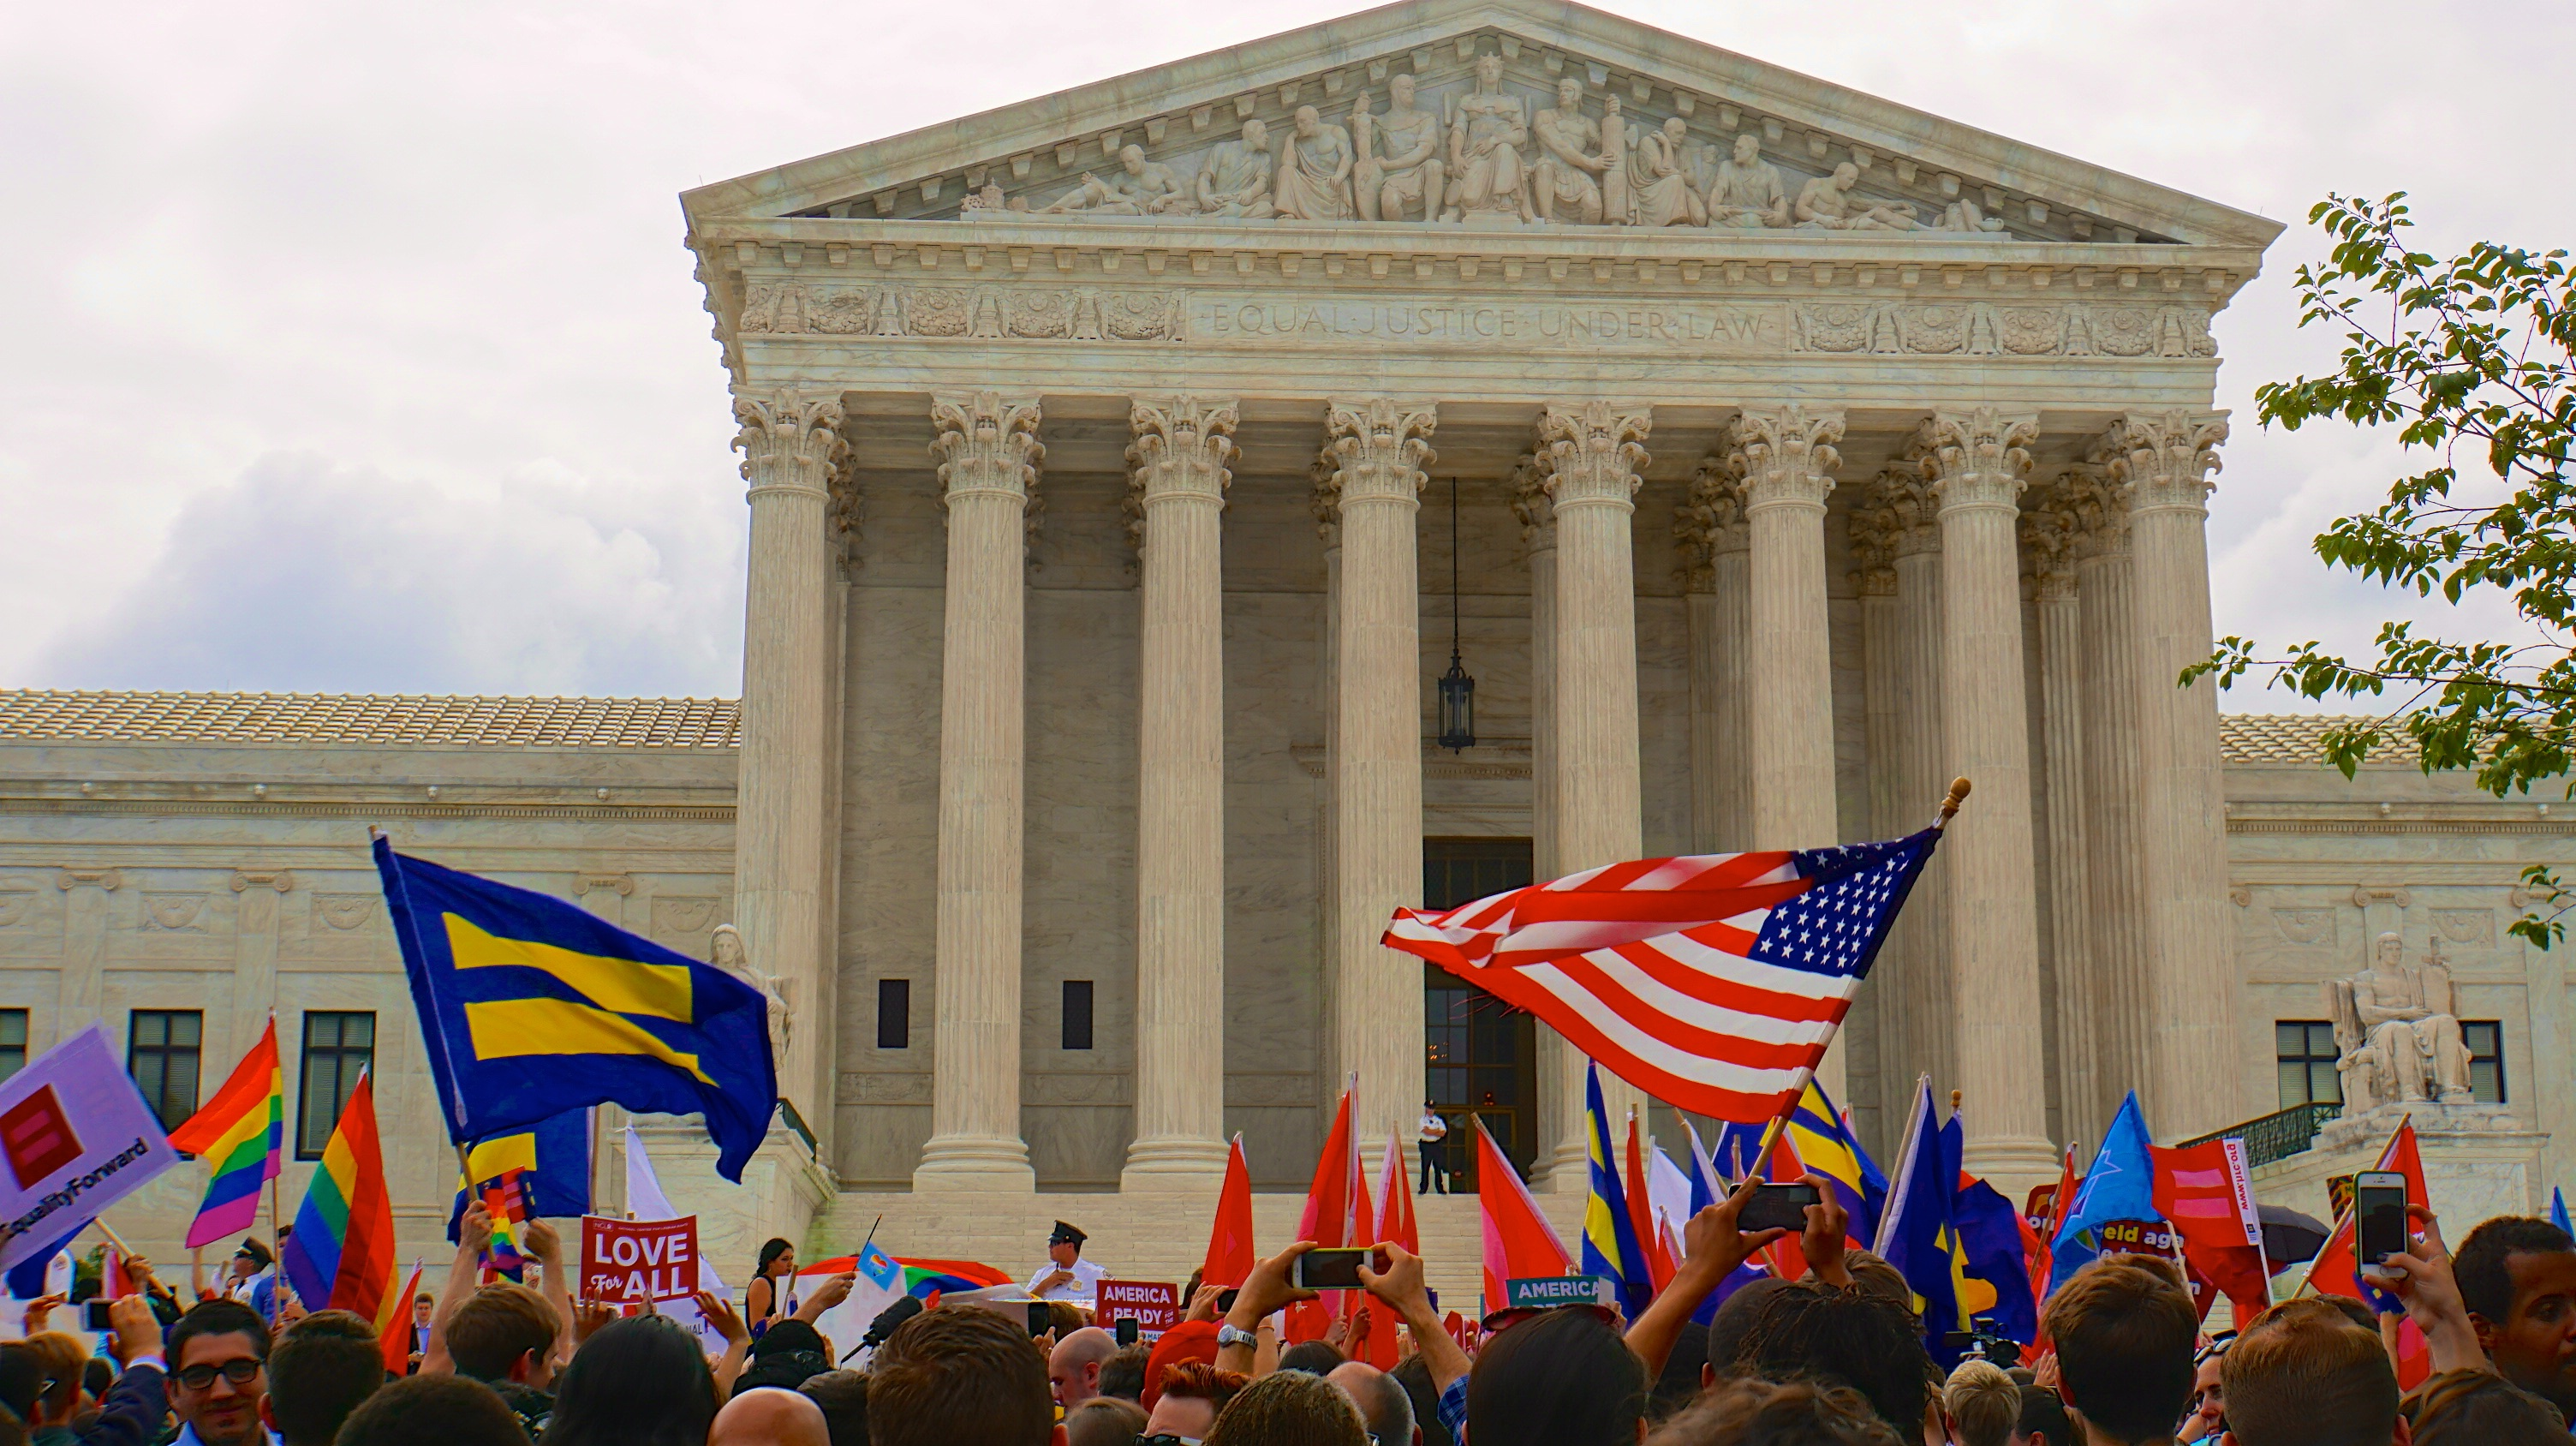 Supporters of marriage equality gathered in front of the Supreme Court last year